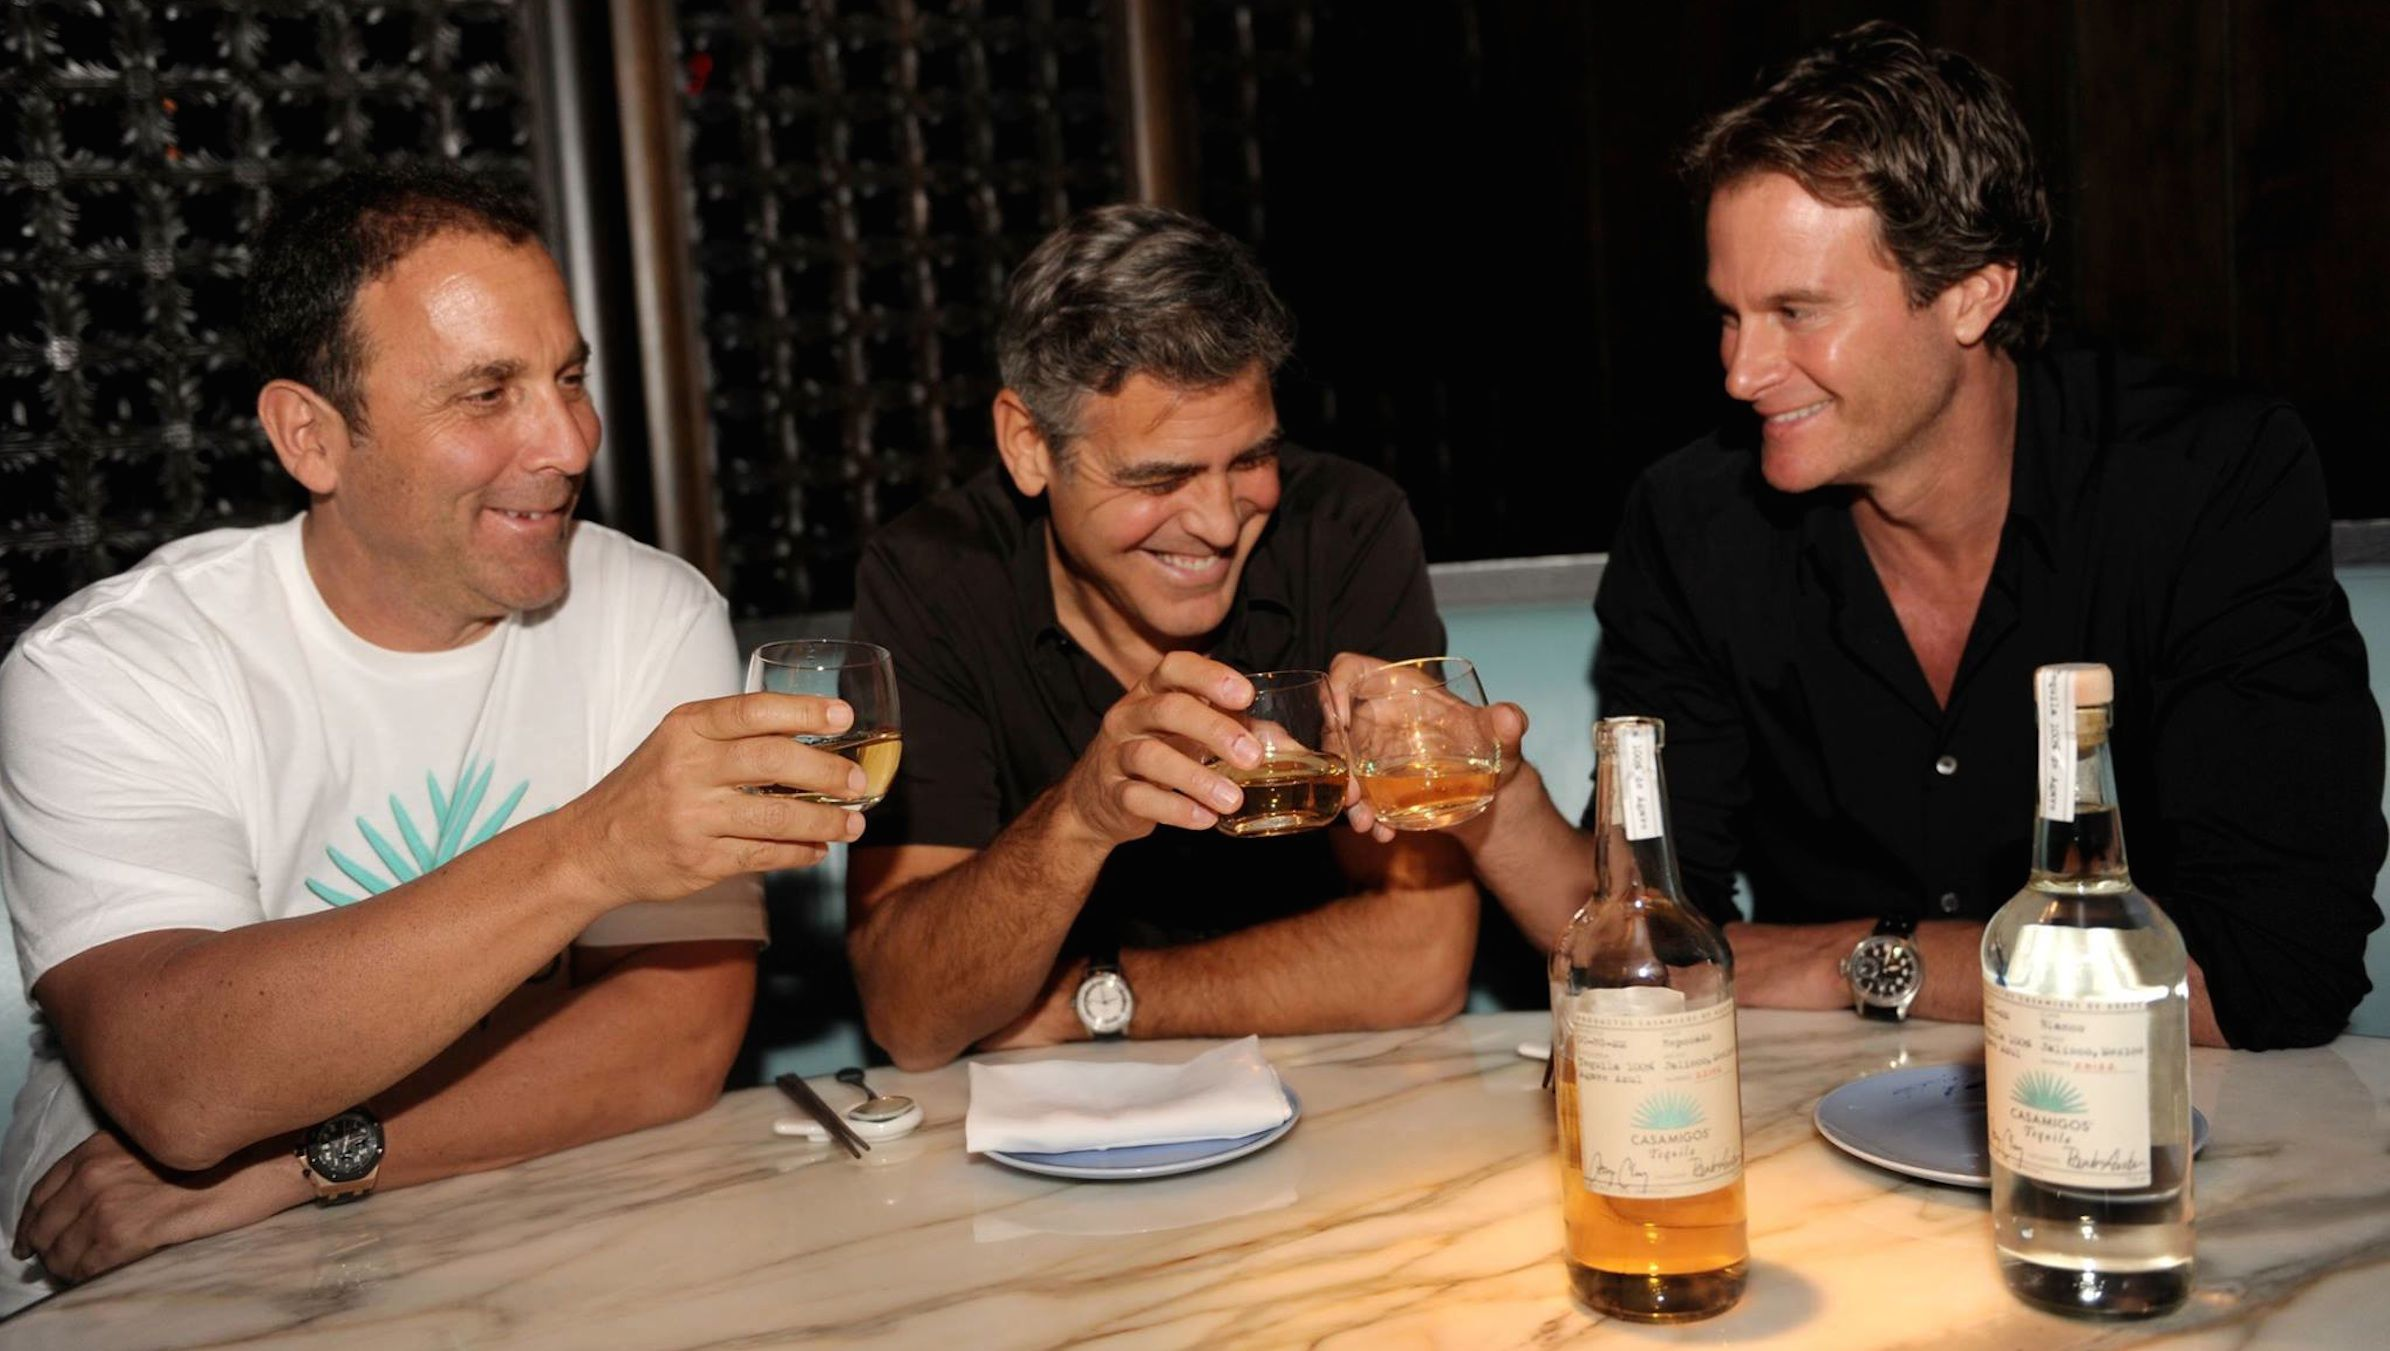 George Clooney's tequila